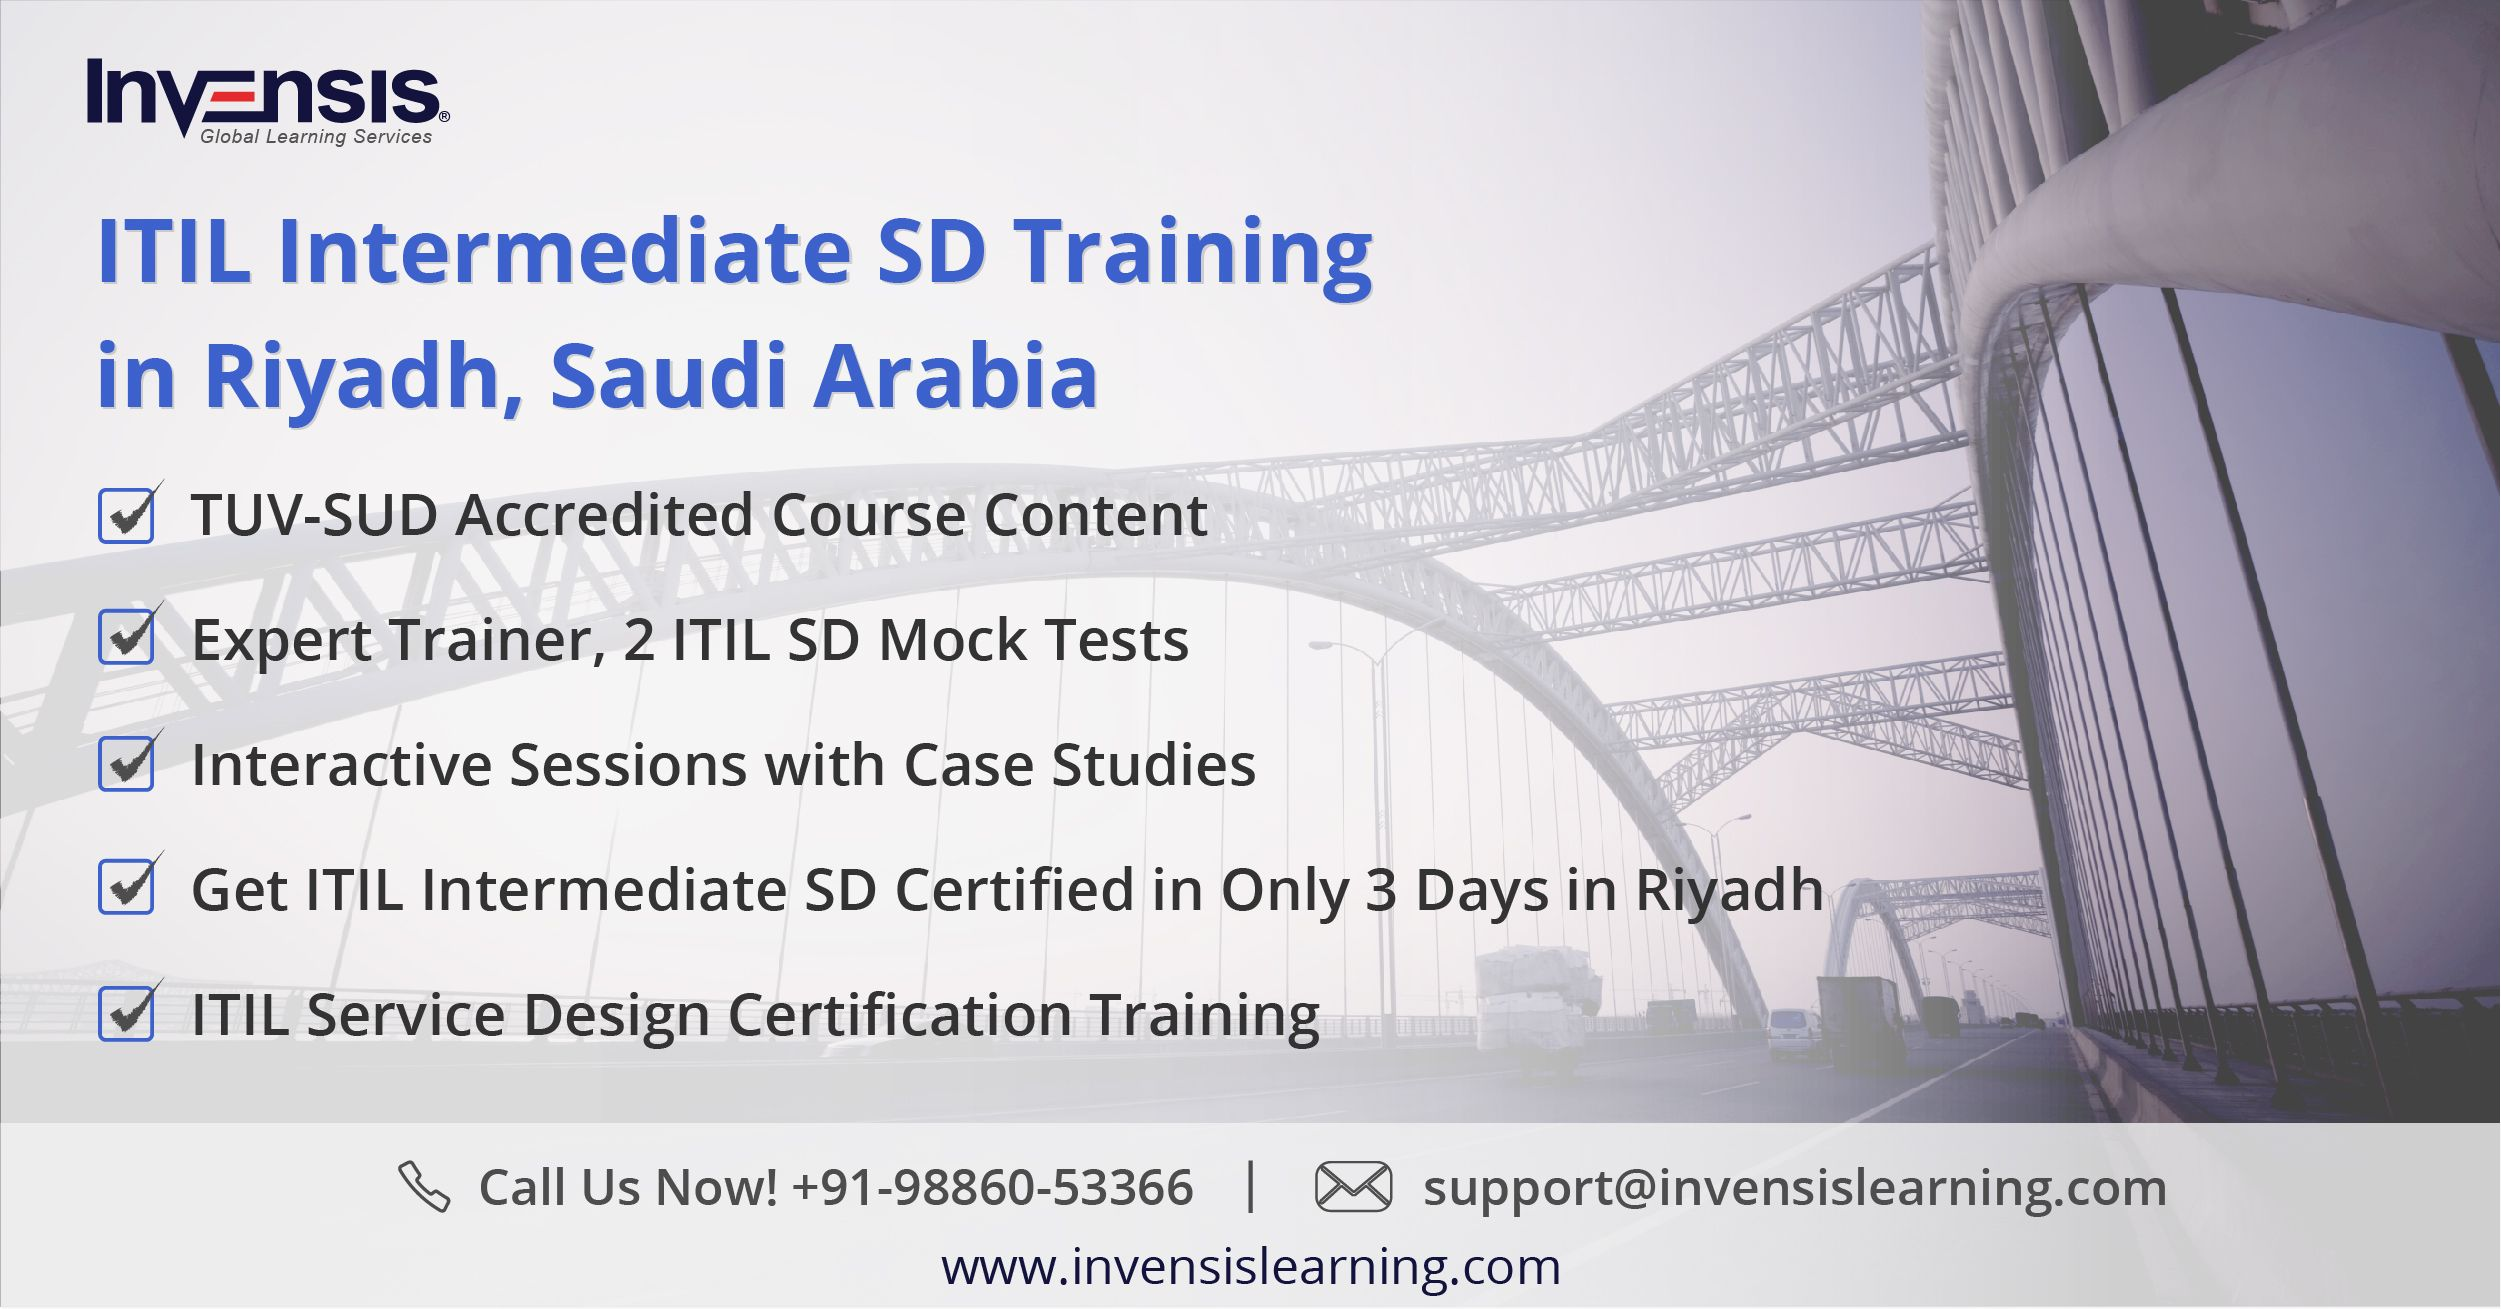 Itil intermediate so certification training in bangalore india itil intermediate so certification training in bangalore india june 7 8 2014 course benefits tuv sud accredited interactive weekend ses 1betcityfo Image collections